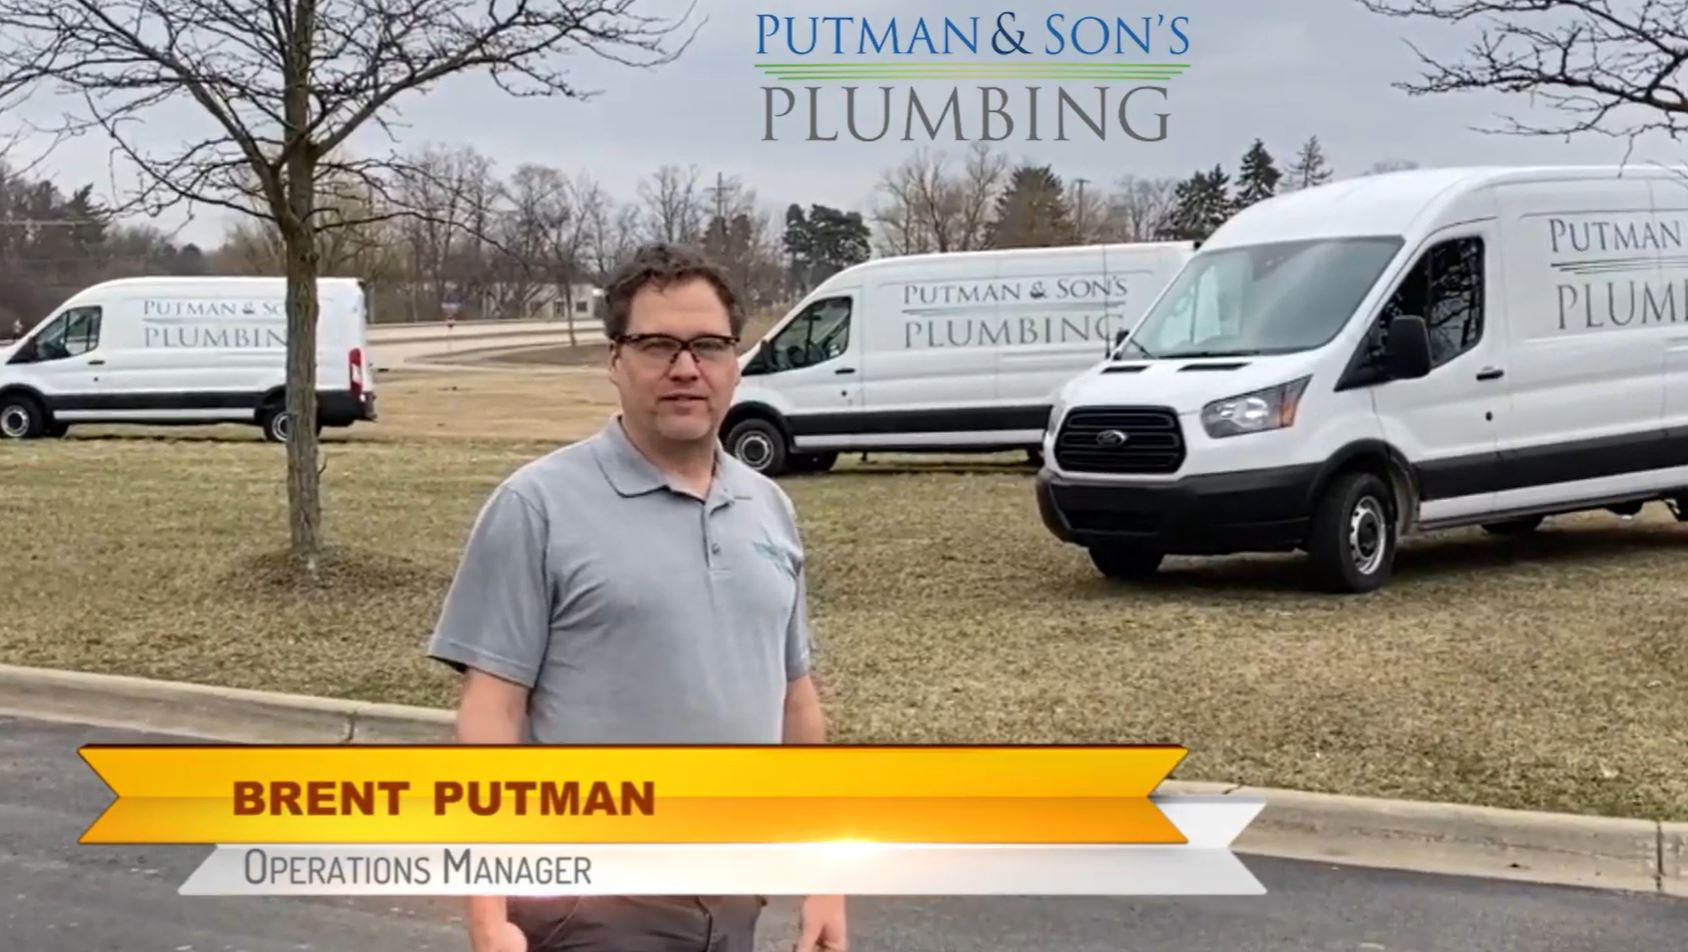 Putman & Son's Plumbing Moved